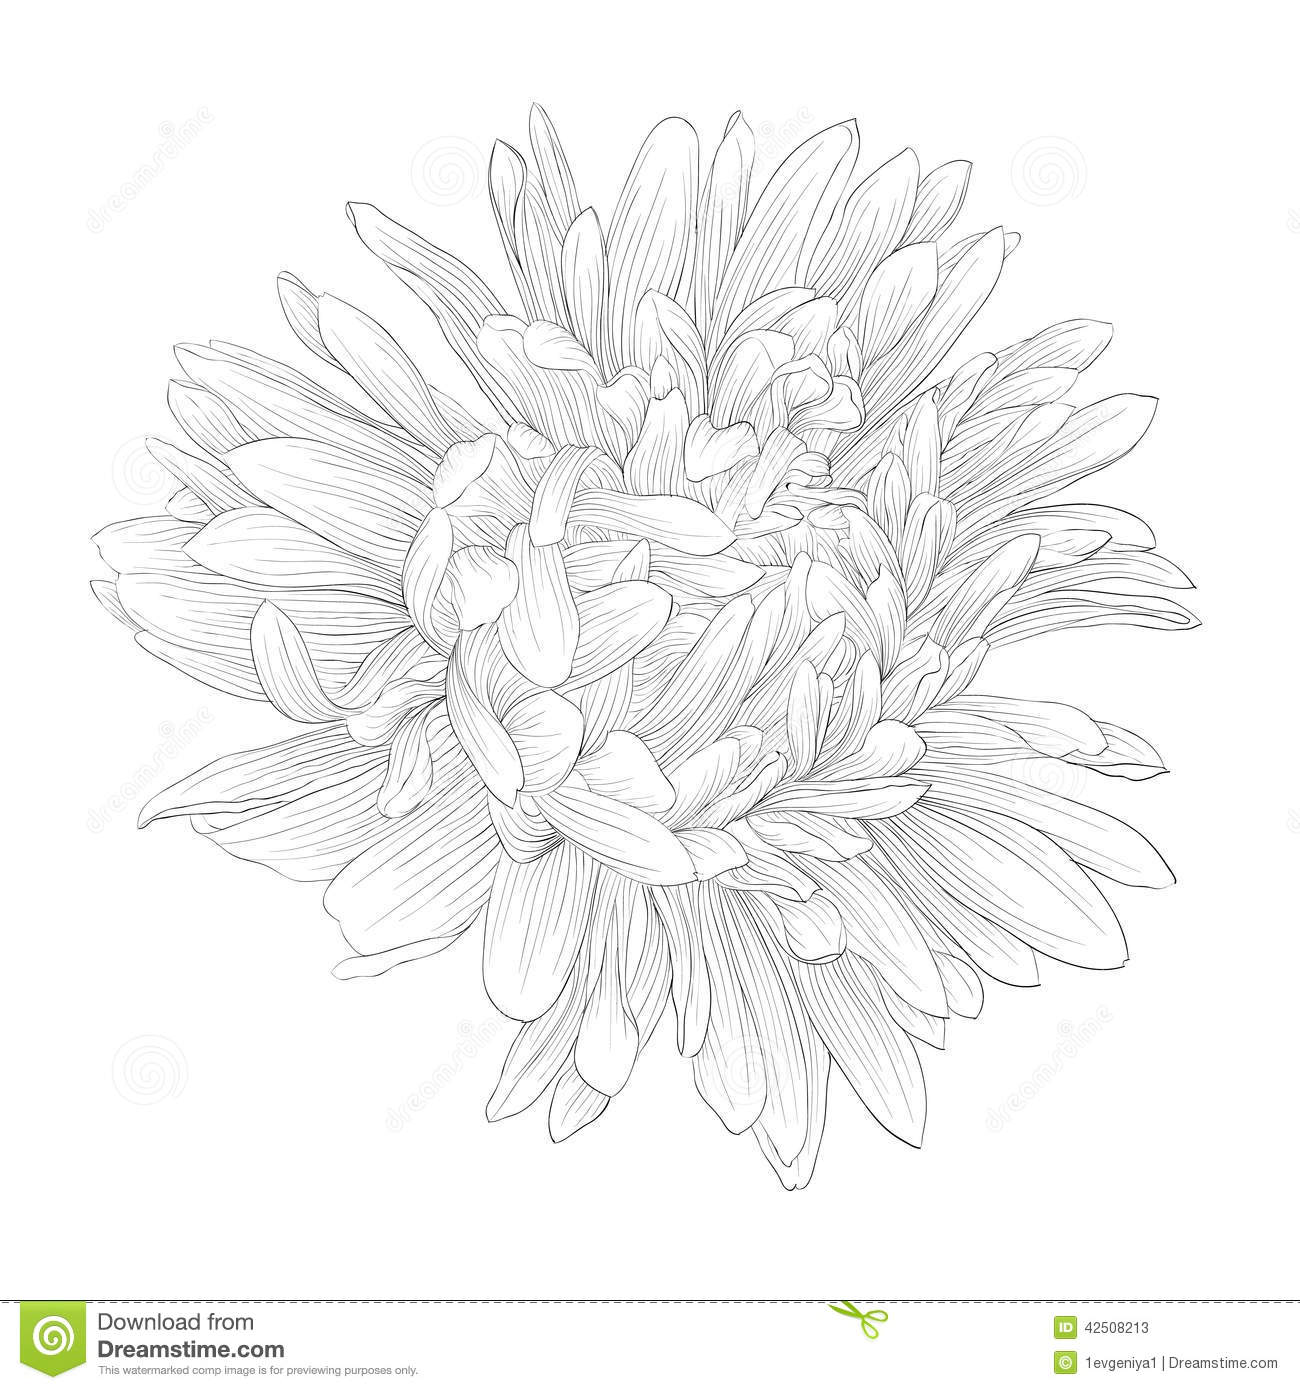 Aster Flower Line Drawing : White aster flower tattoo imgkid the image kid